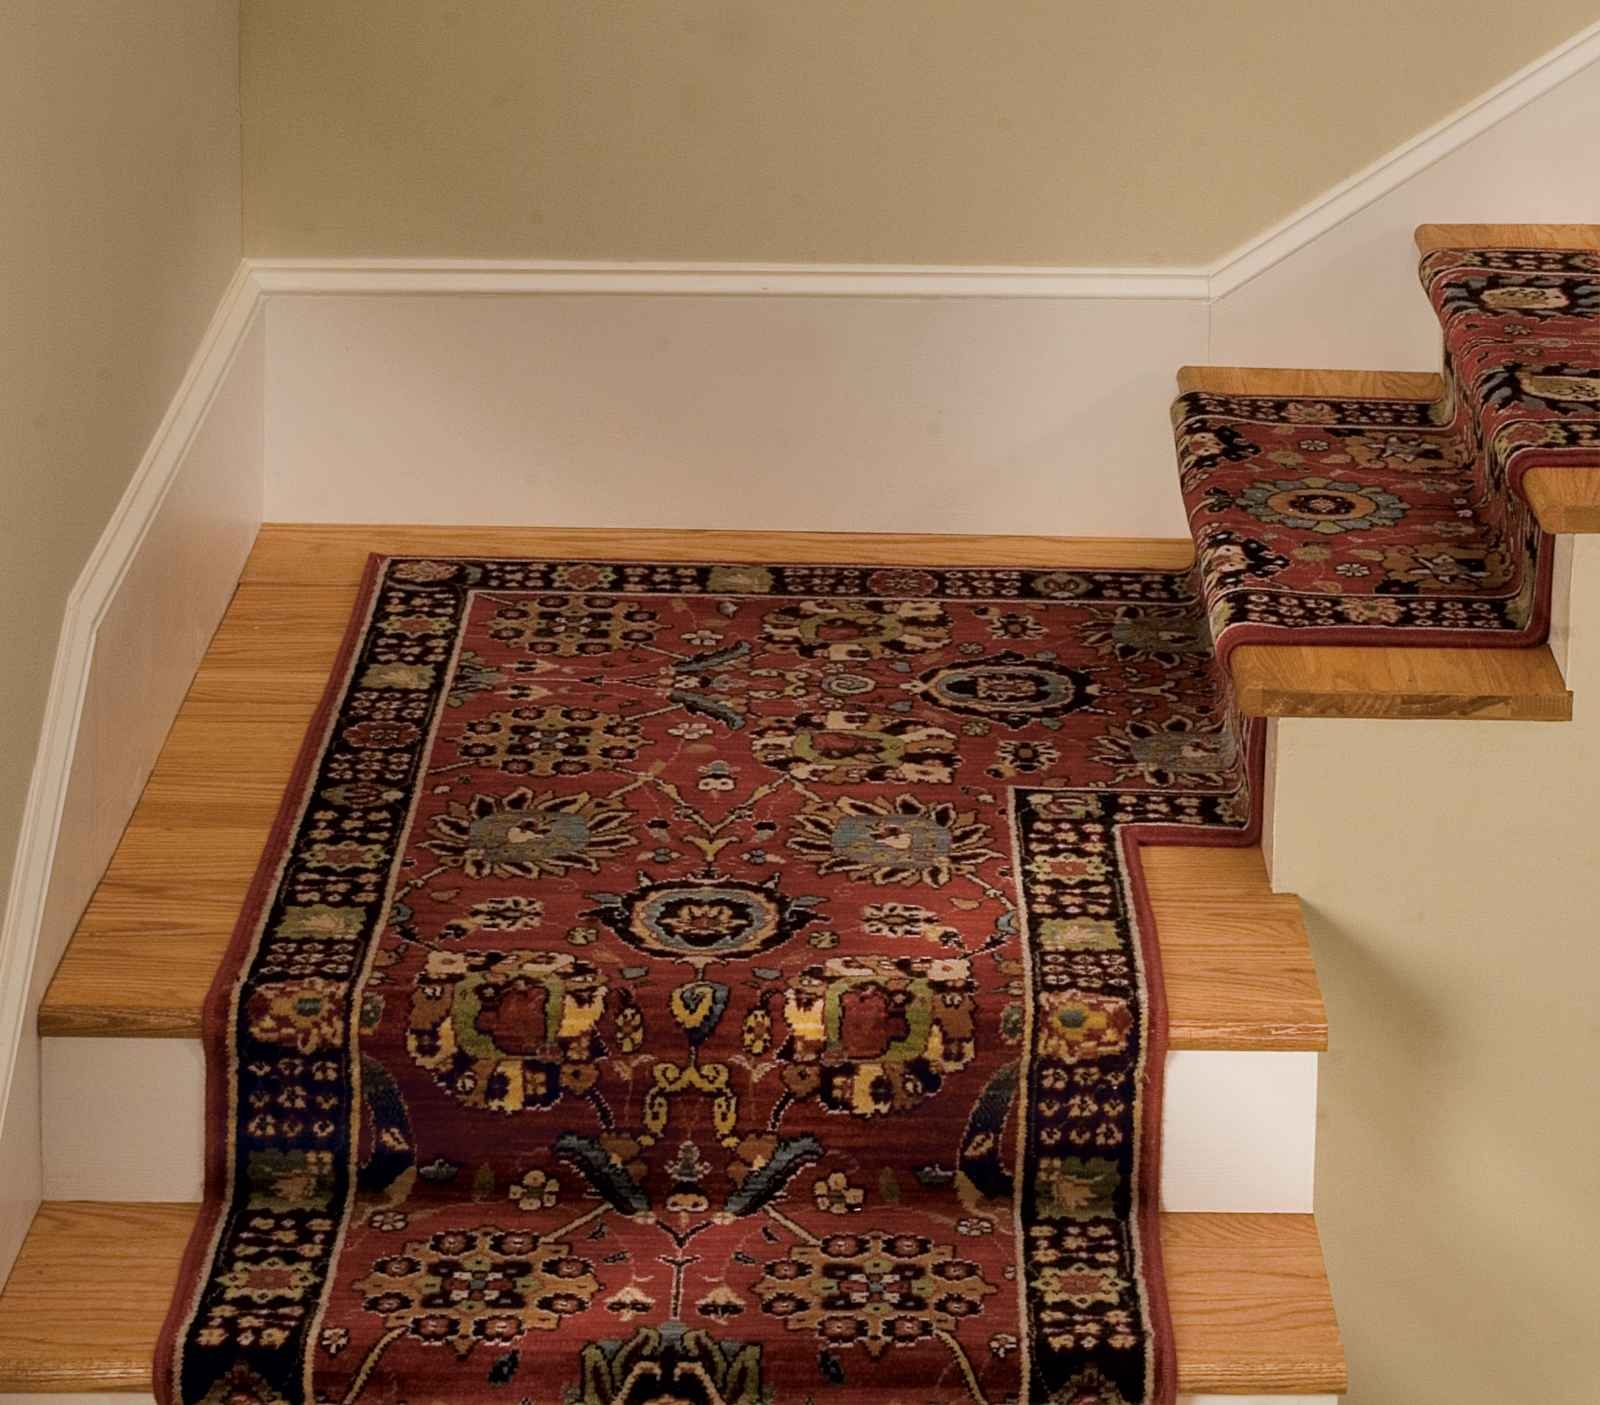 Carpet Stair Runner For Home New Home Pinterest Stair Treads Regarding Carpet Stair Treads And Rugs (Image 6 of 15)